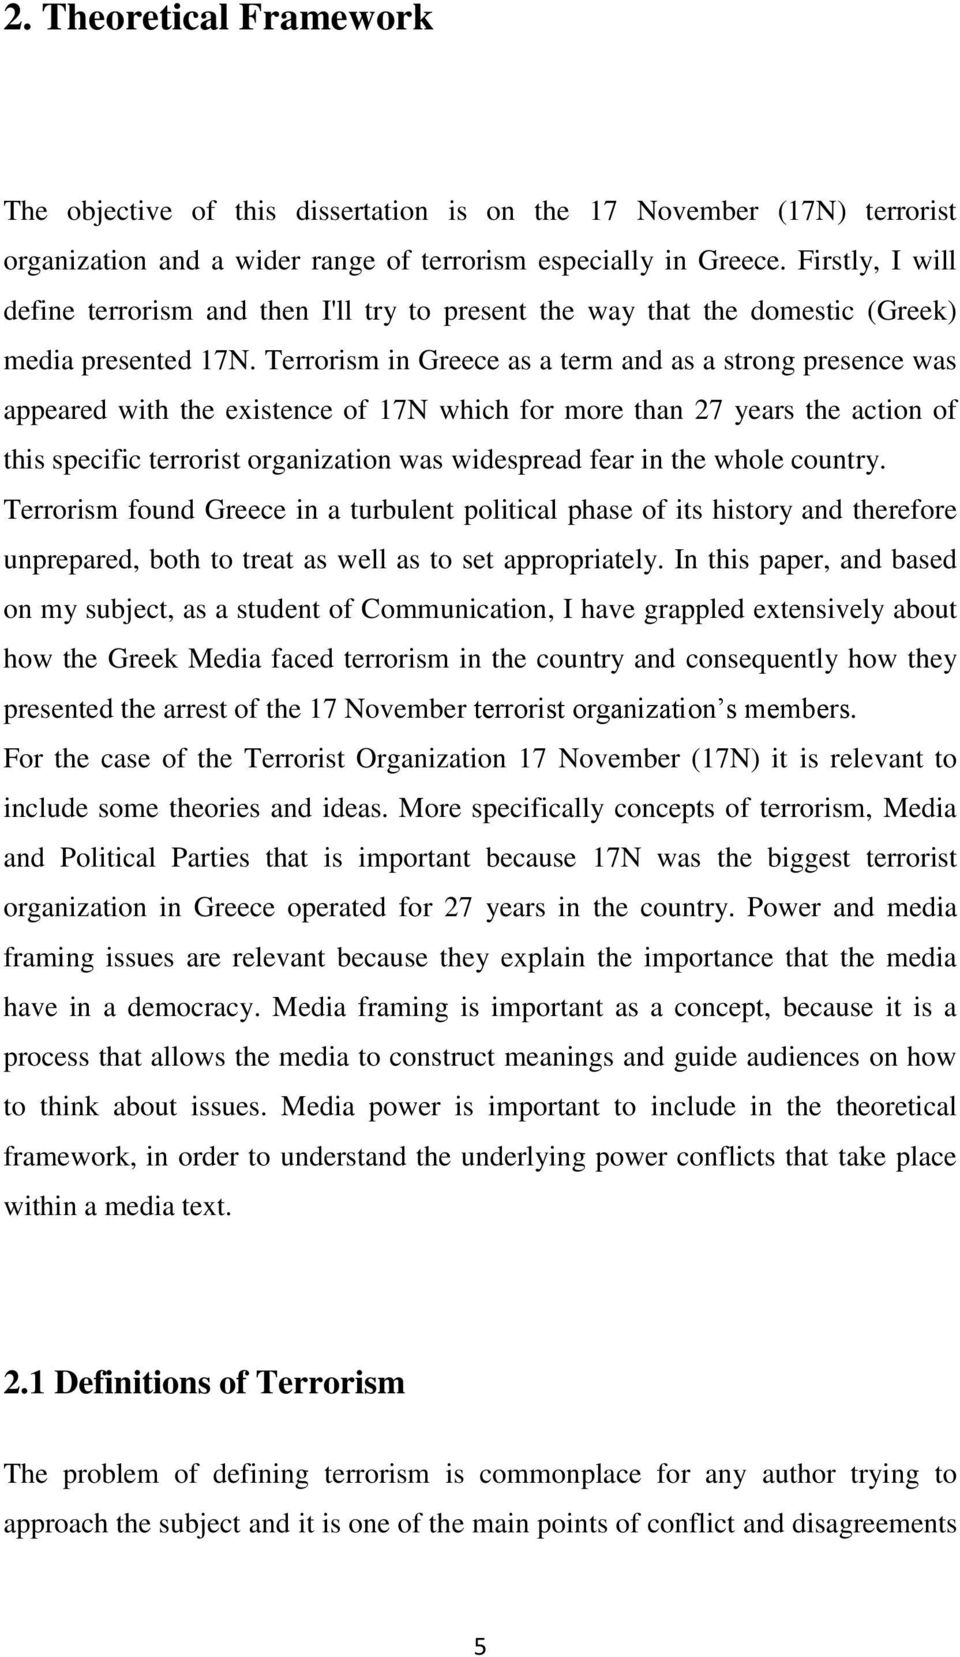 Terrorism in Greece as a term and as a strong presence was appeared with the existence of 17N which for more than 27 years the action of this specific terrorist organization was widespread fear in